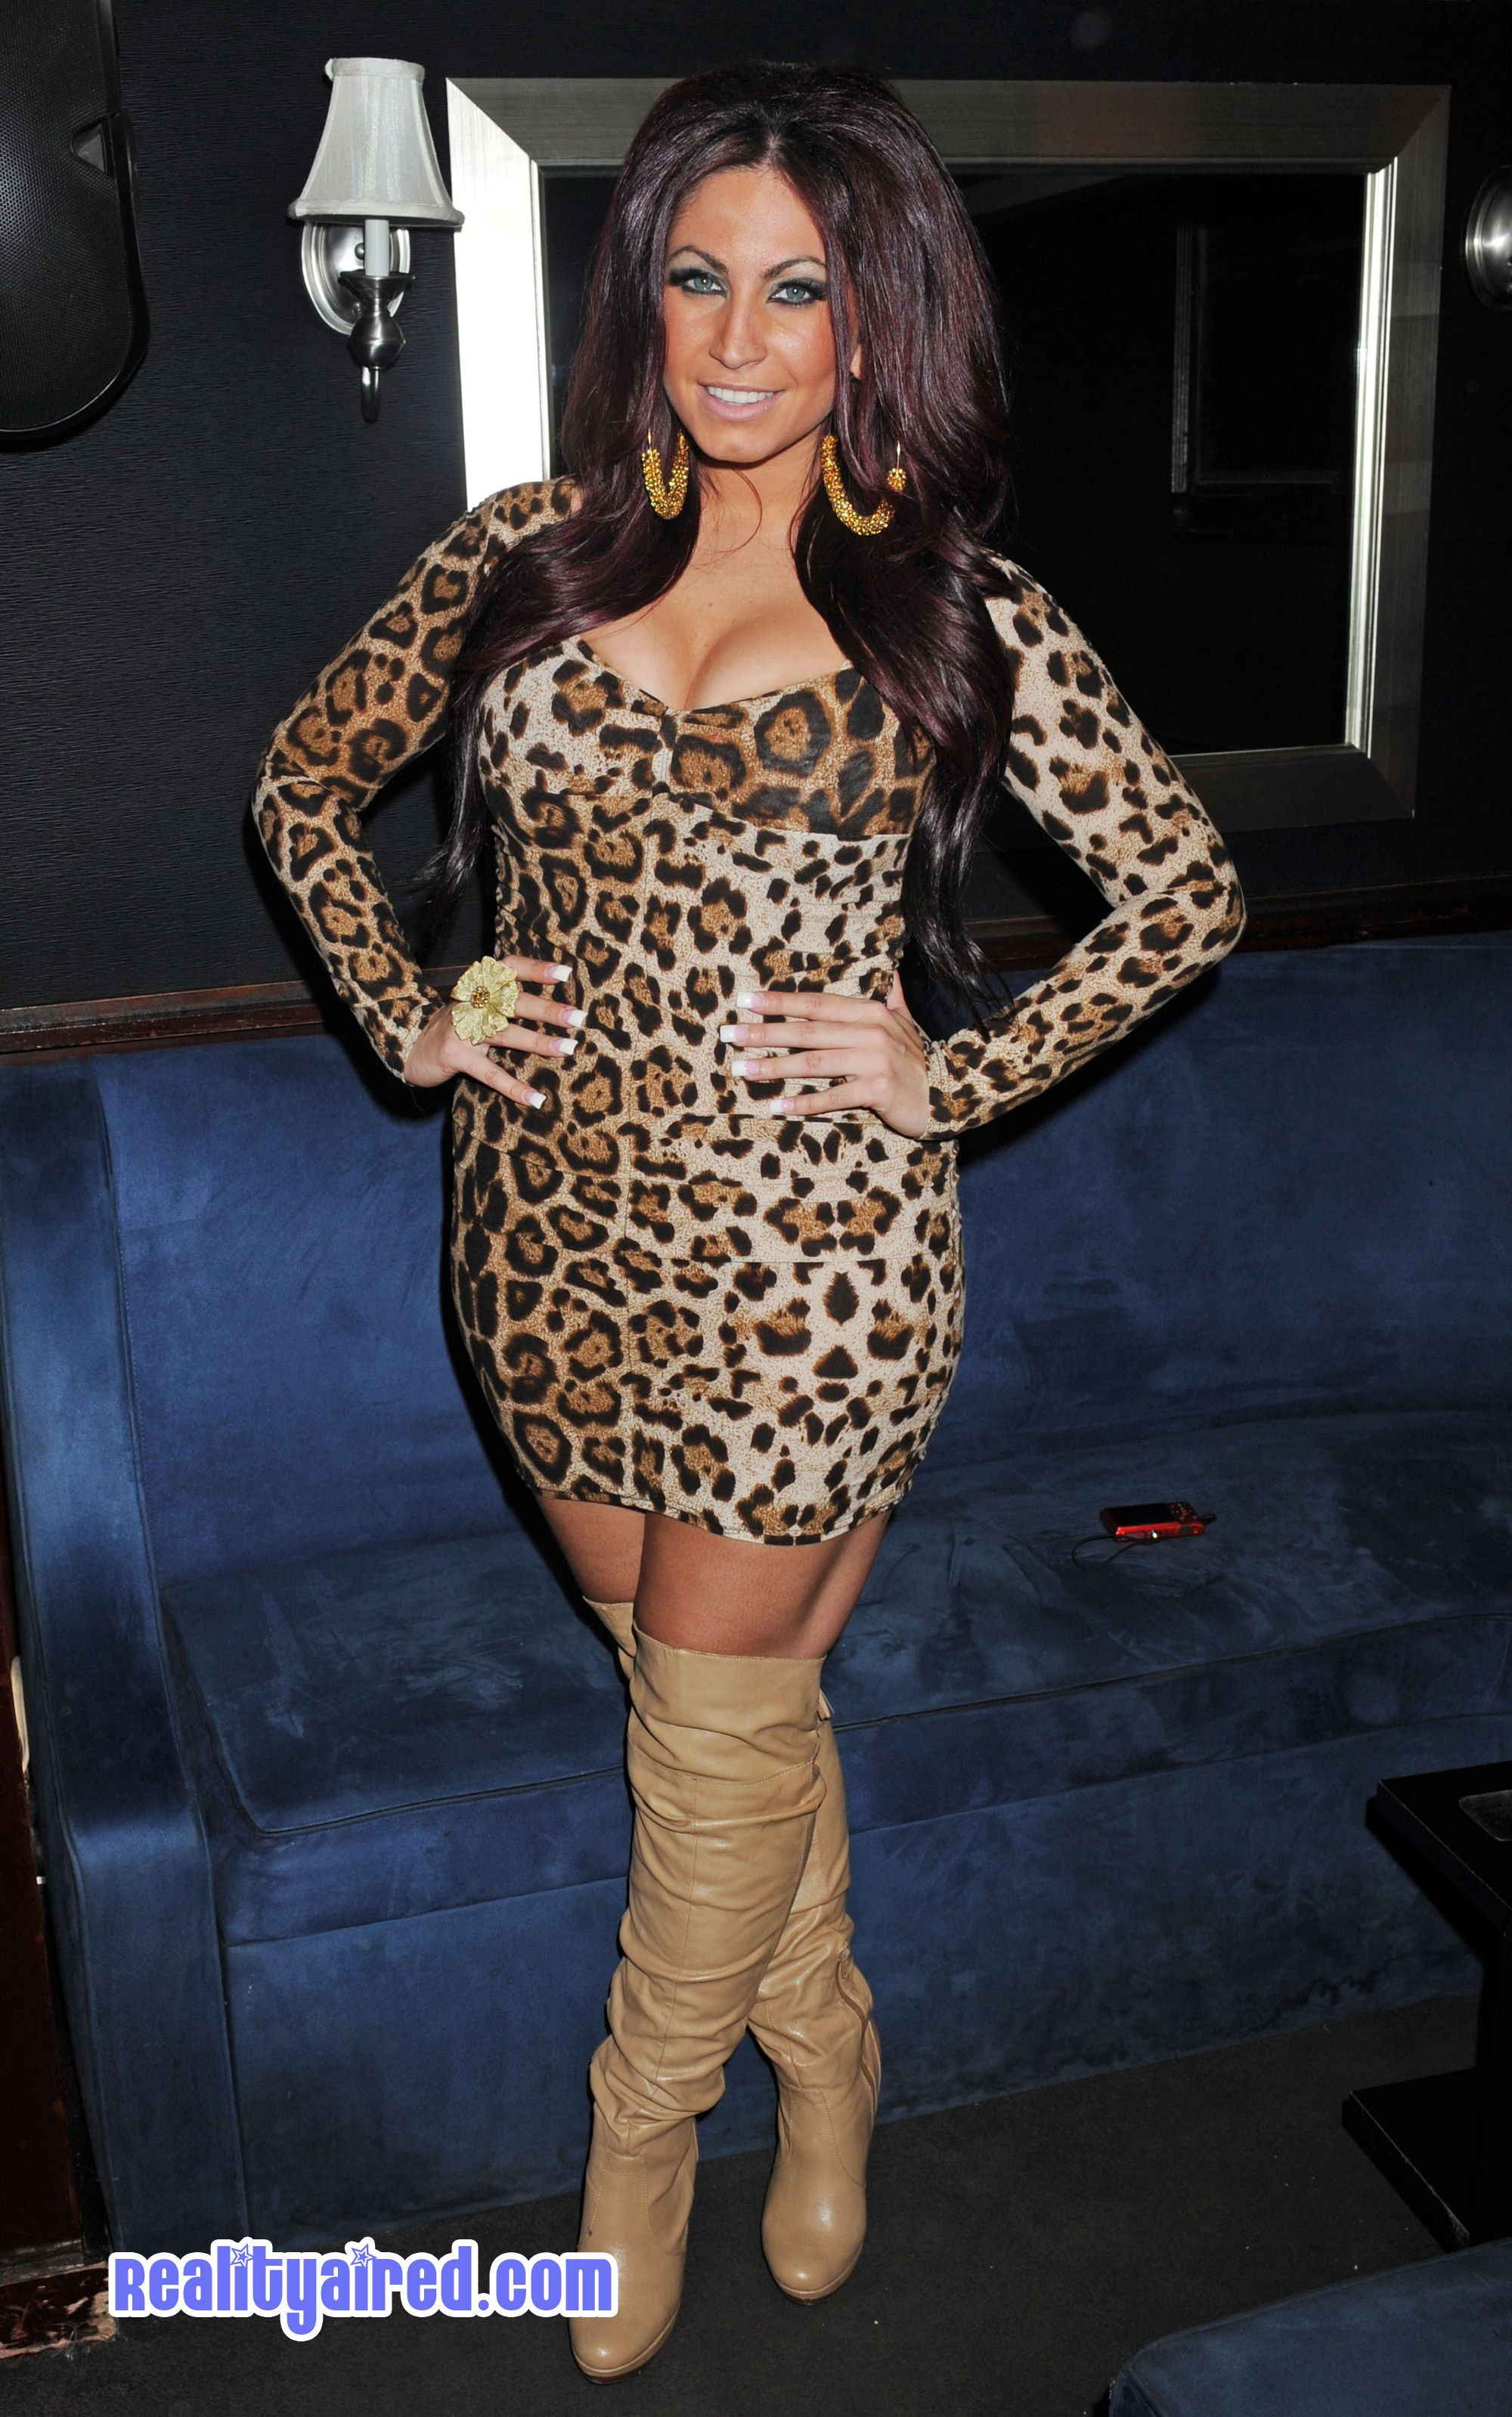 Hacked Tracy Dimarco nude photos 2019